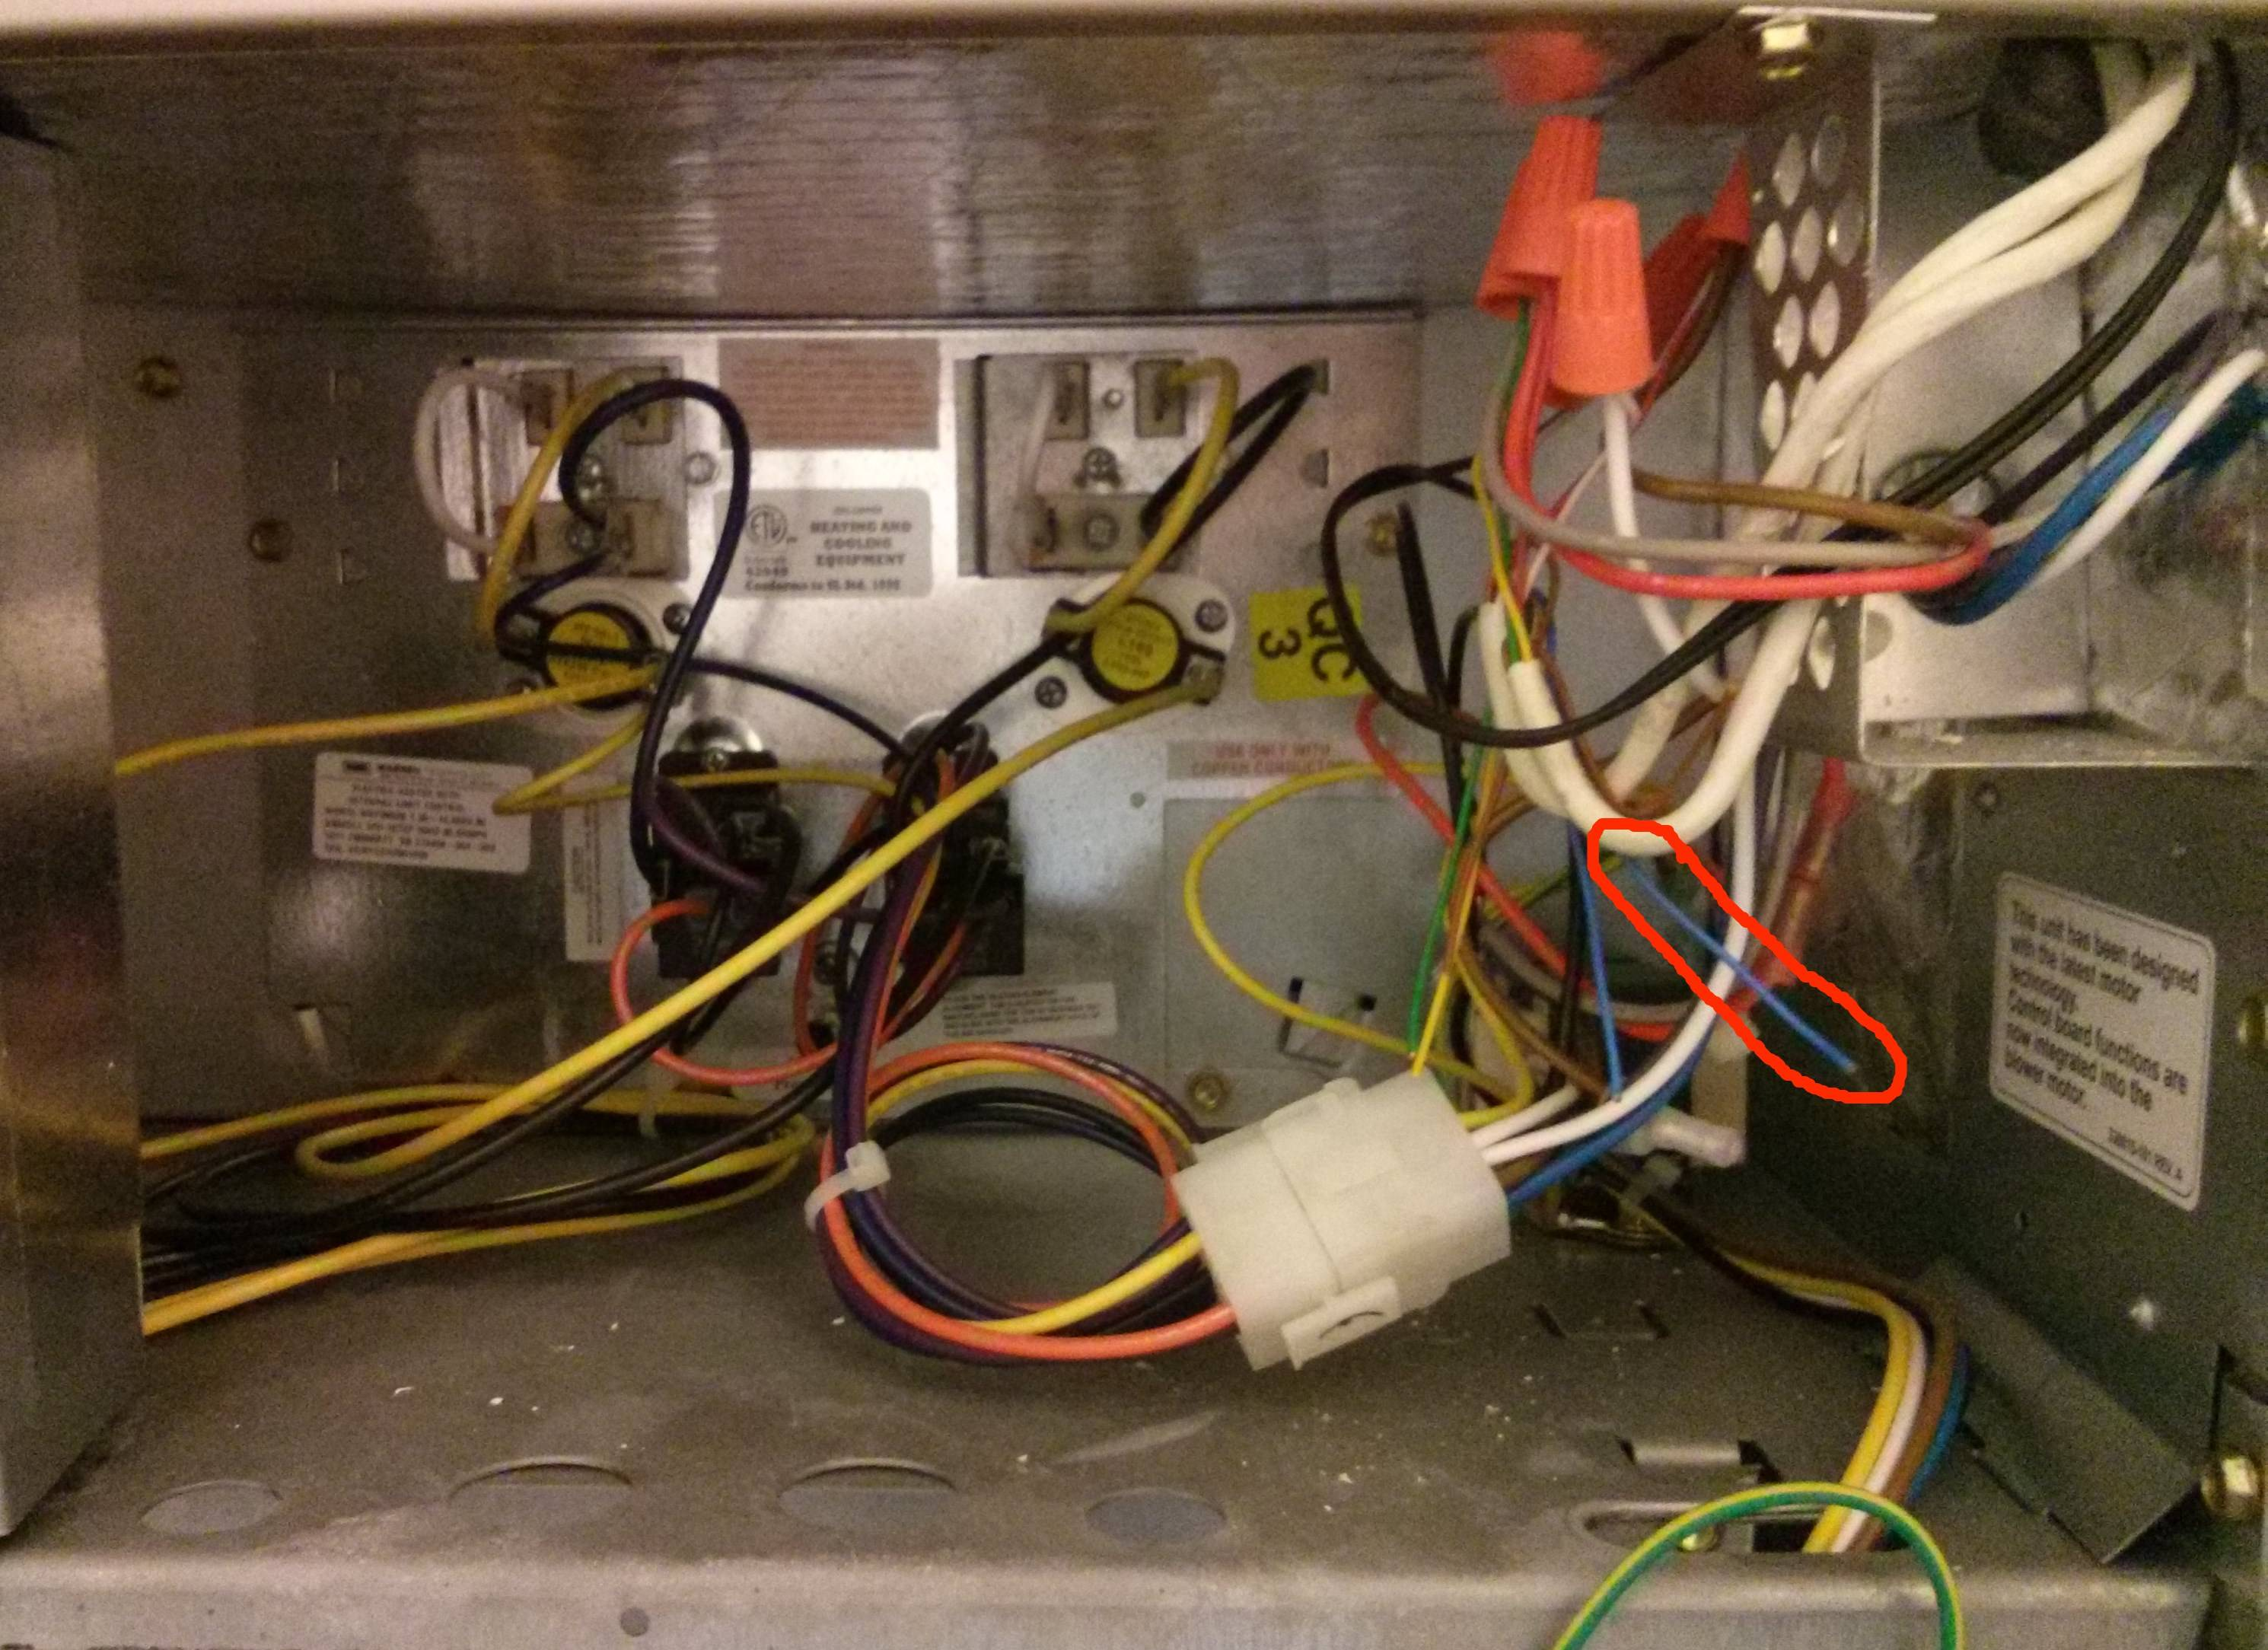 carrier hvac thermostat wiring diagram rv slide out switch how do i connect the common wire in a air